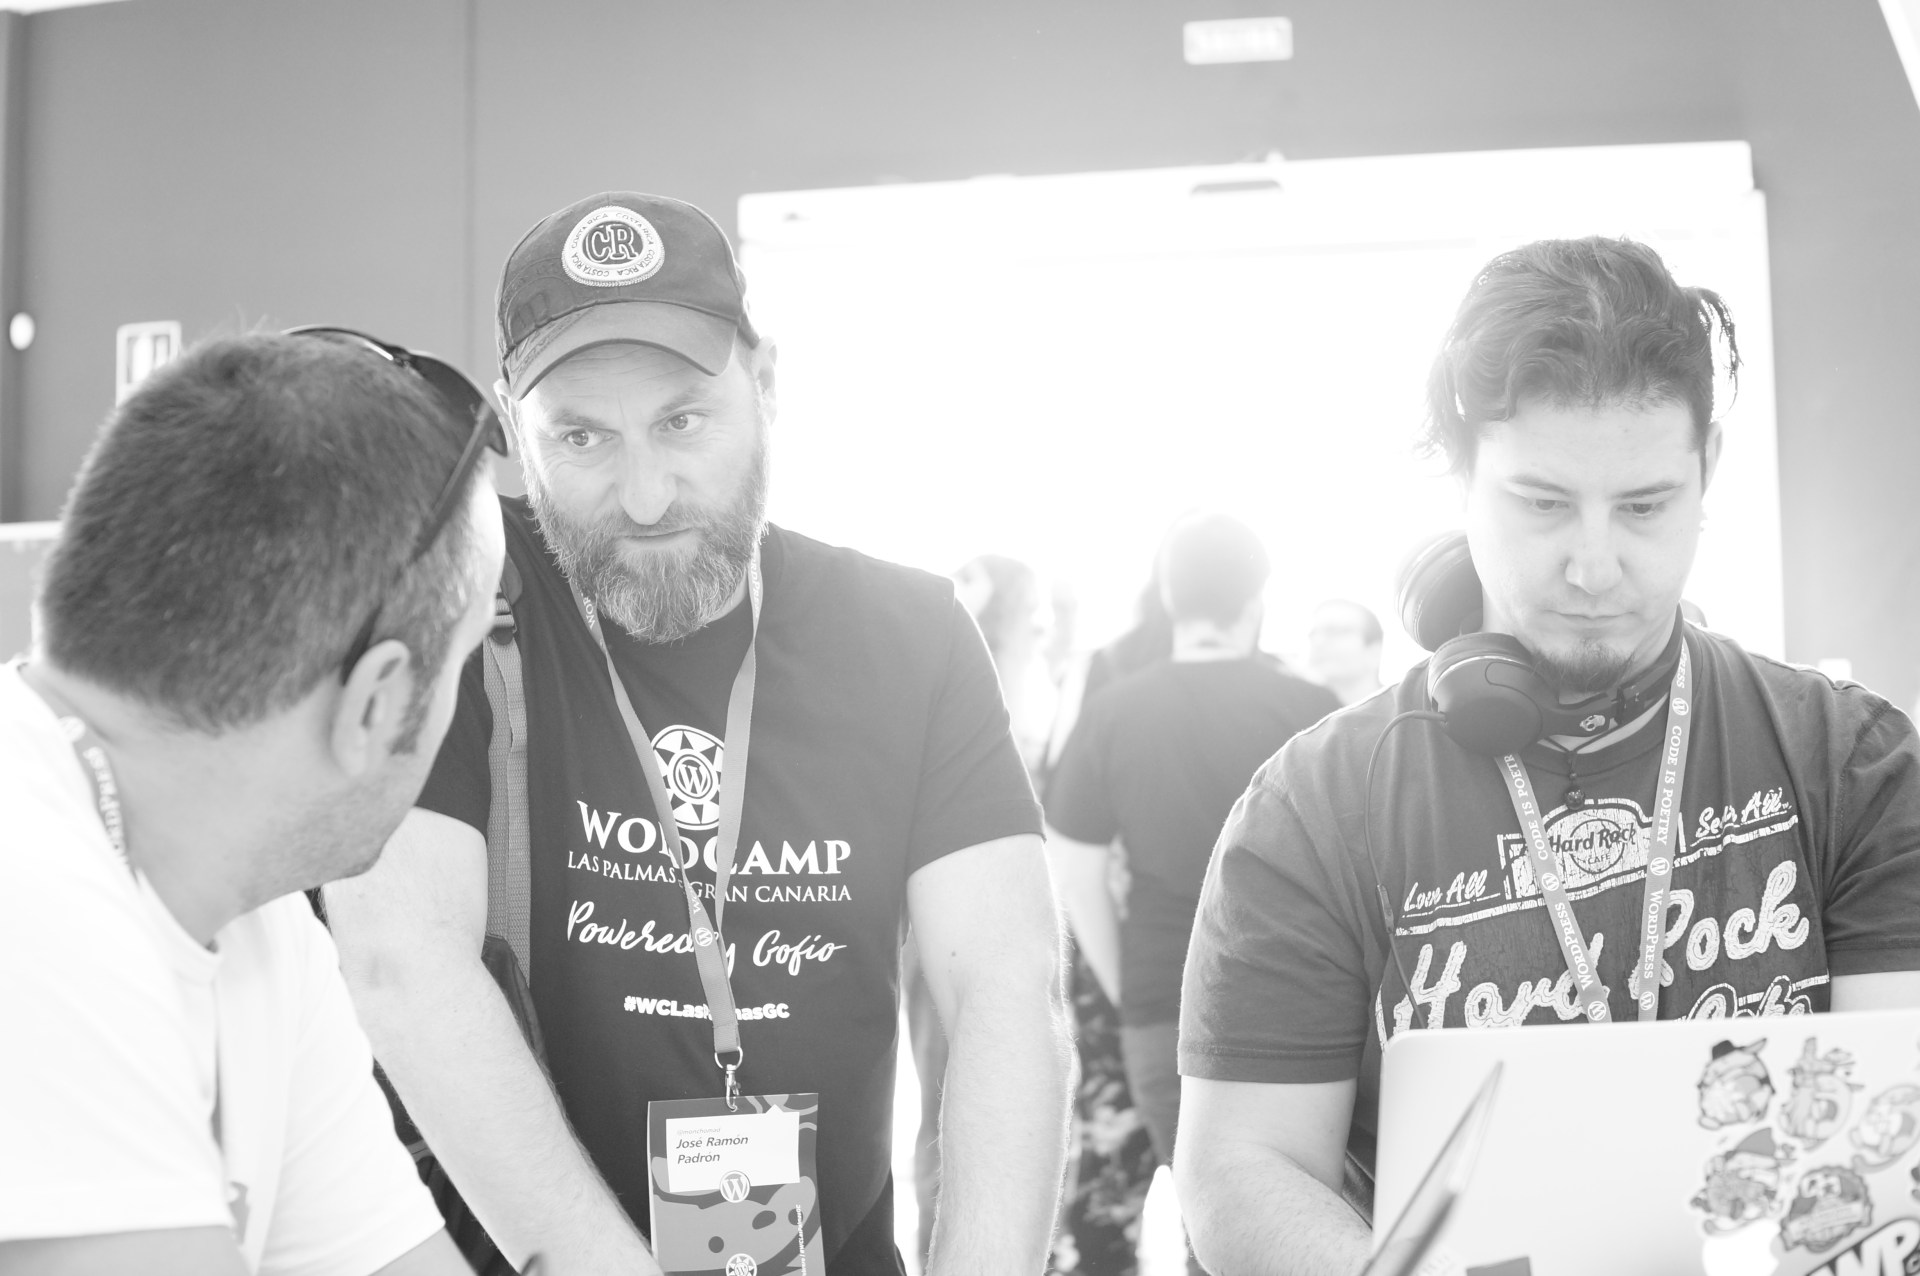 WordCamp Las Palmas 2019